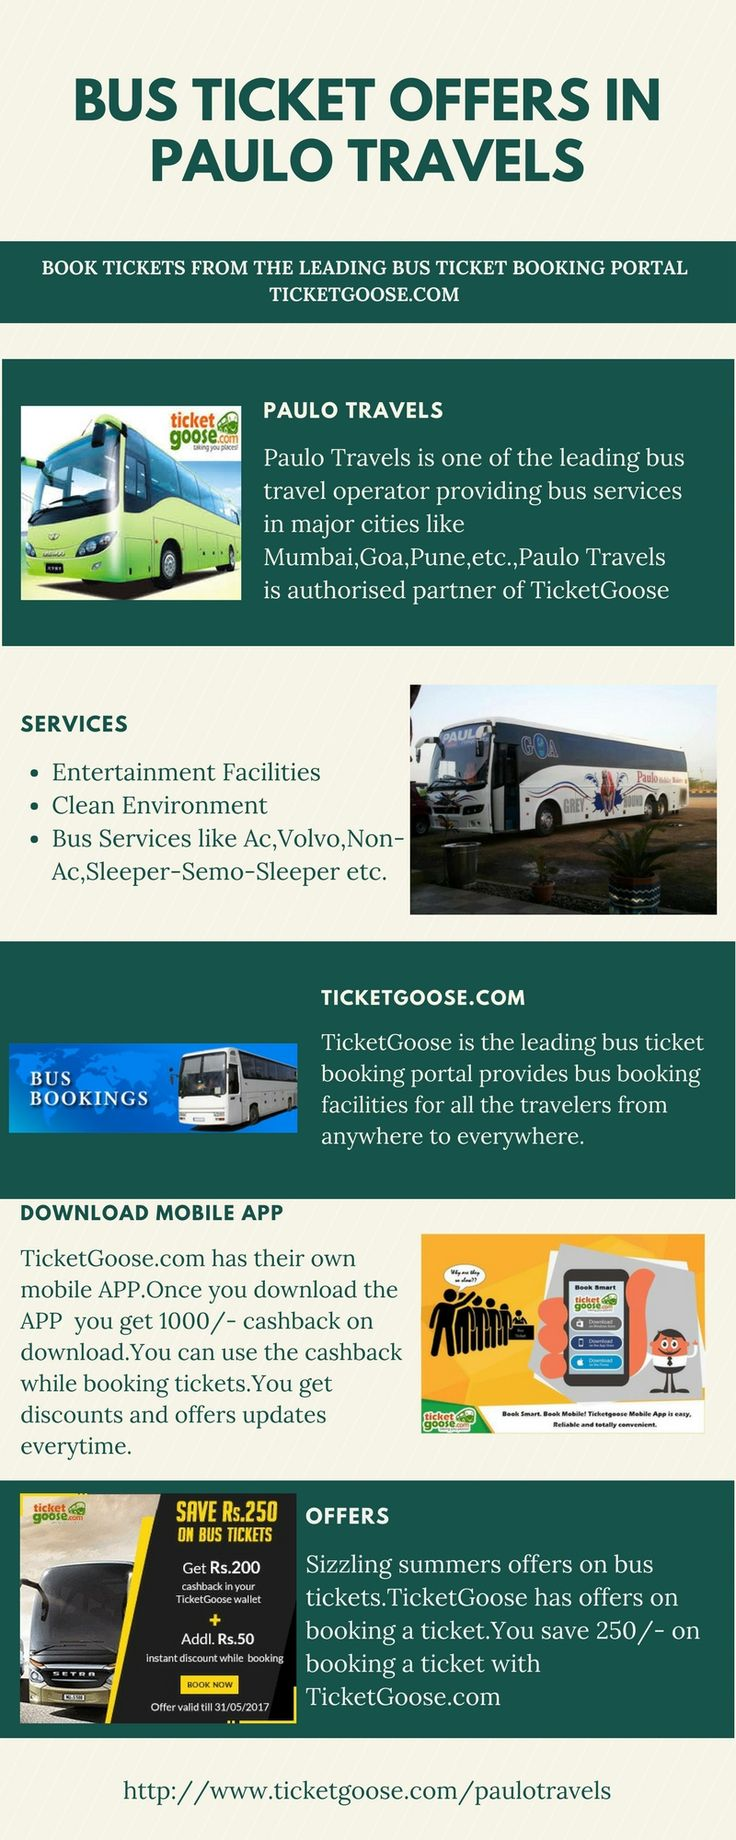 Paulo Travels provides the bus ticket booking to the major cities, Book the tickets for Paulo travels at ticket goose at the best fare with best service   http://www.ticketgoose.com/paulotravels